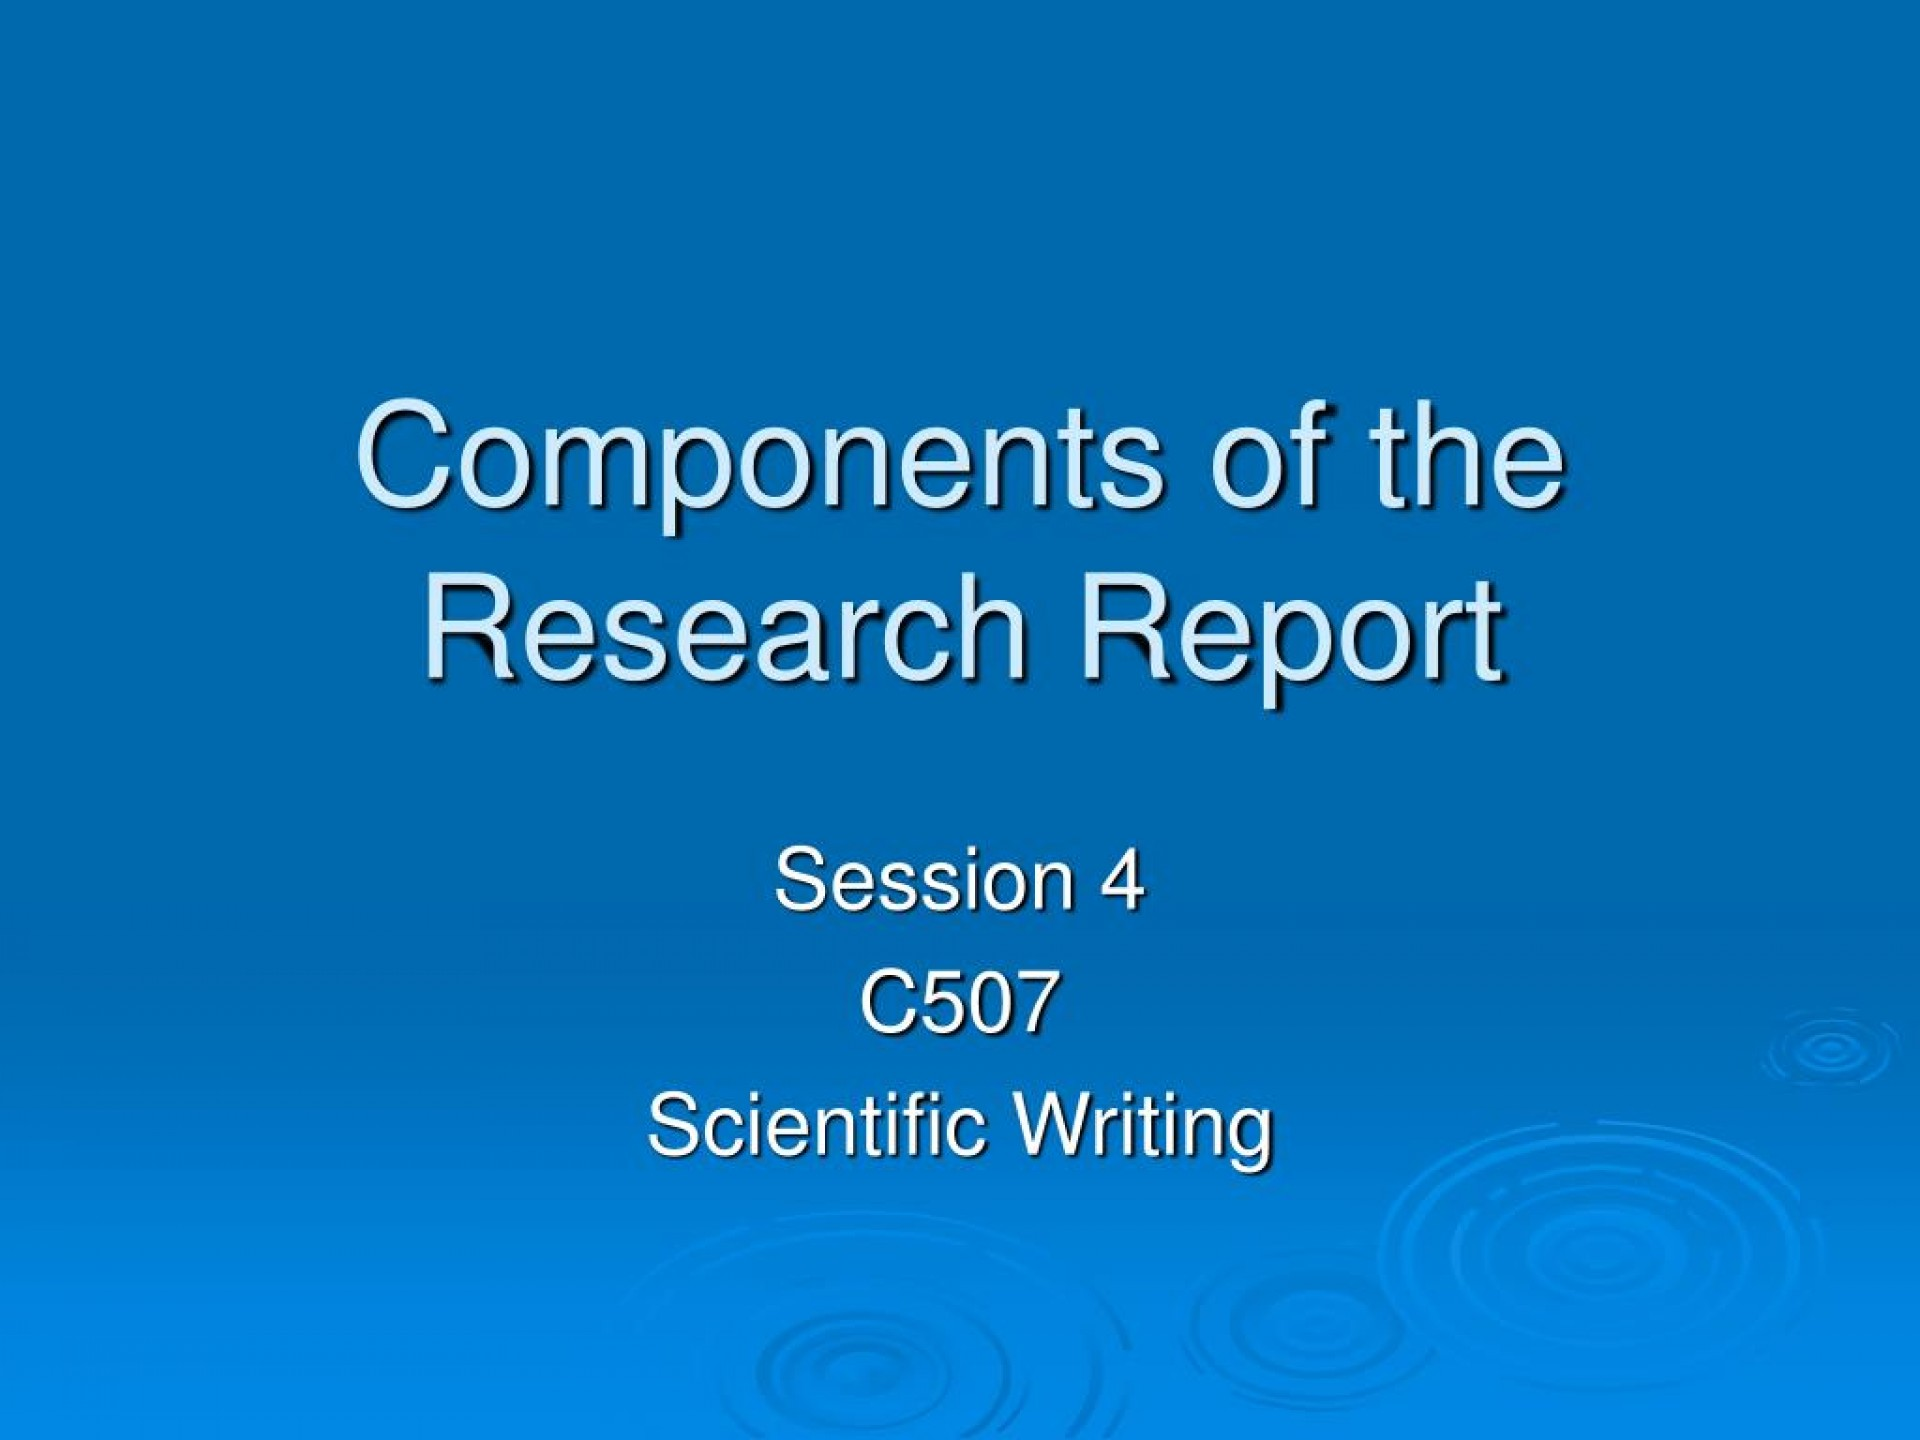 001 Research Paper Components Of The Report L Component Wondrous Ppt Parts Chapter 1 1920